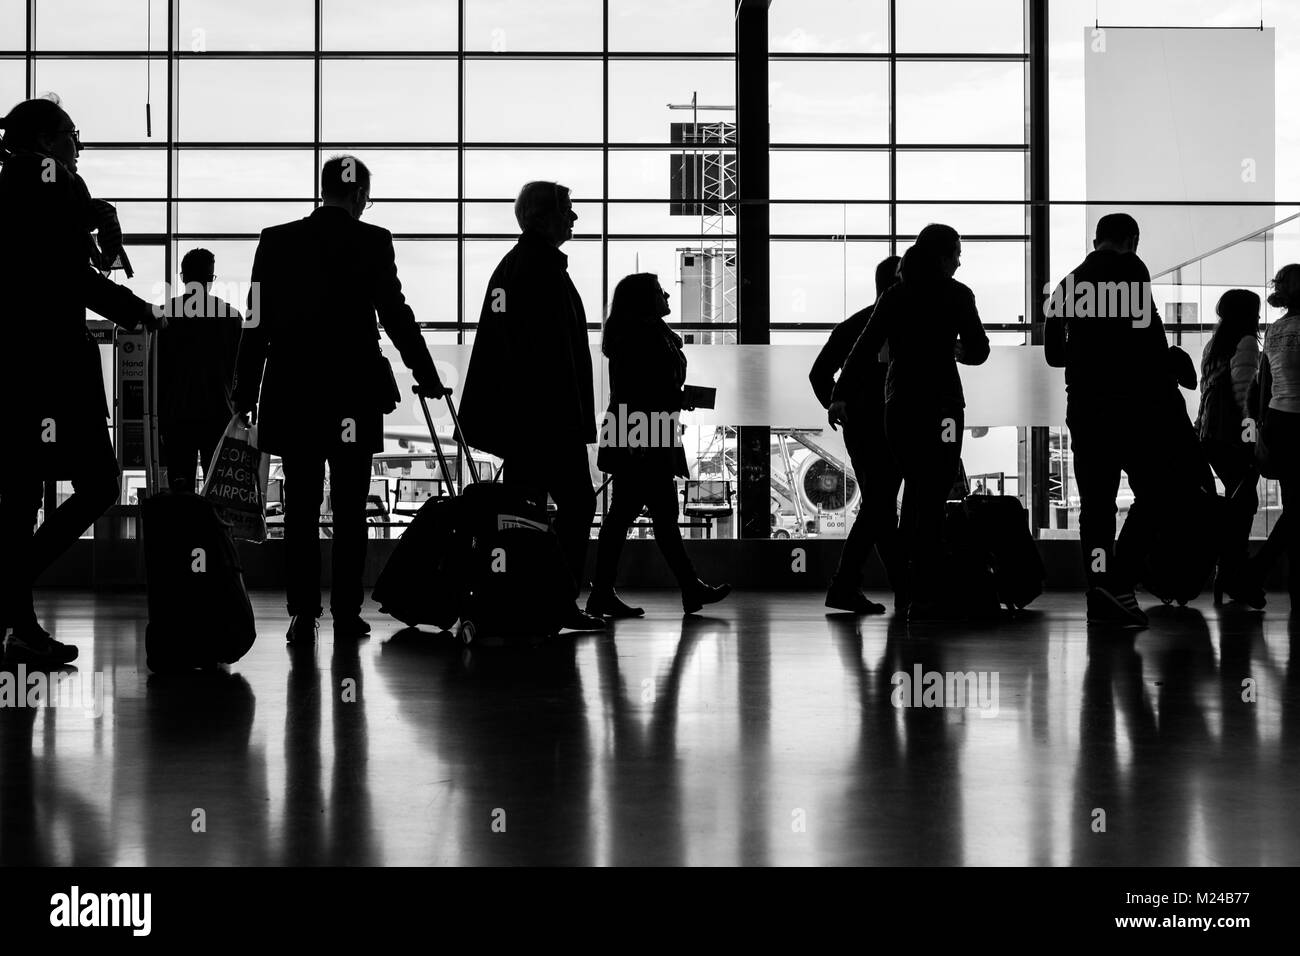 silhoutte Airport Sweden - Stock Image